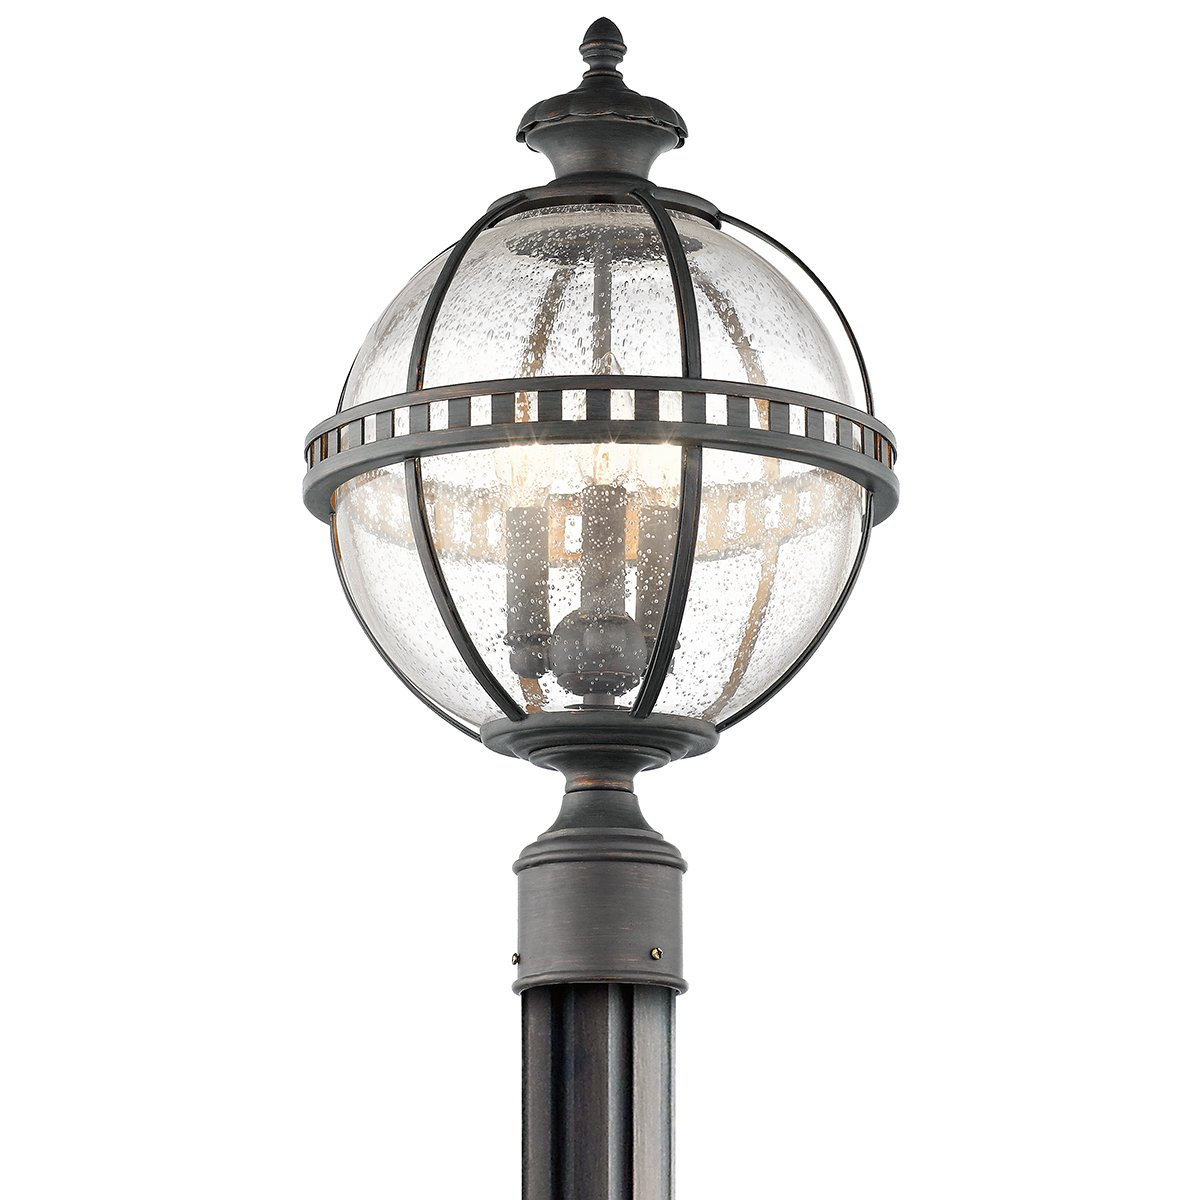 Kichler 49604LD Three Light Outdoor Post Mount by Kichler